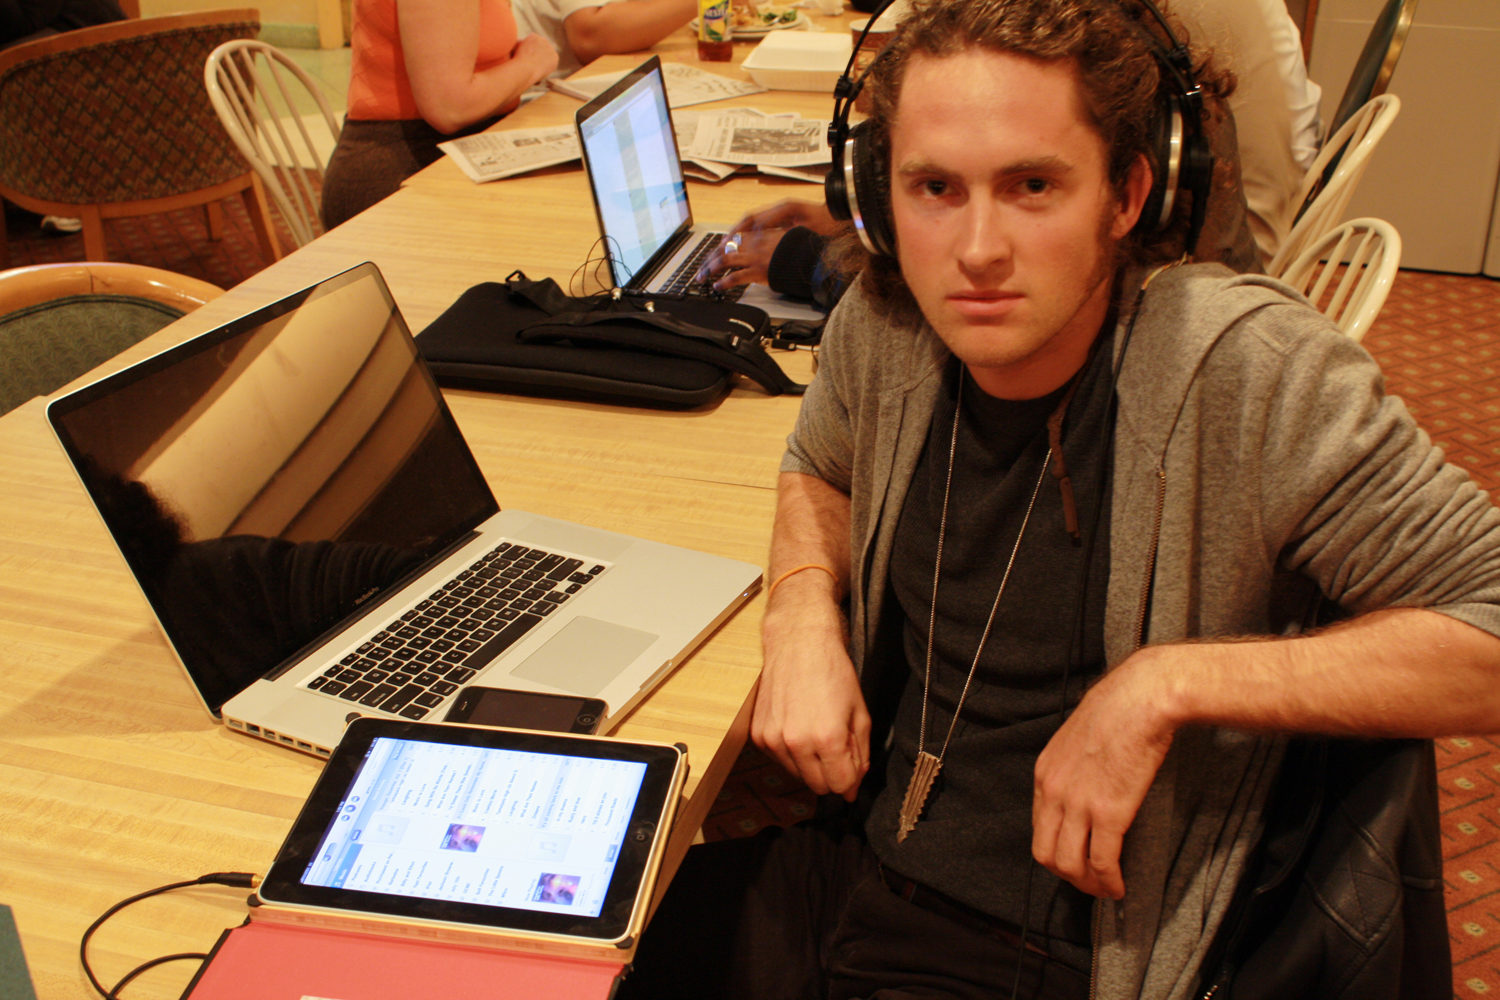 Man with headphones on sits next to laptop and ipad